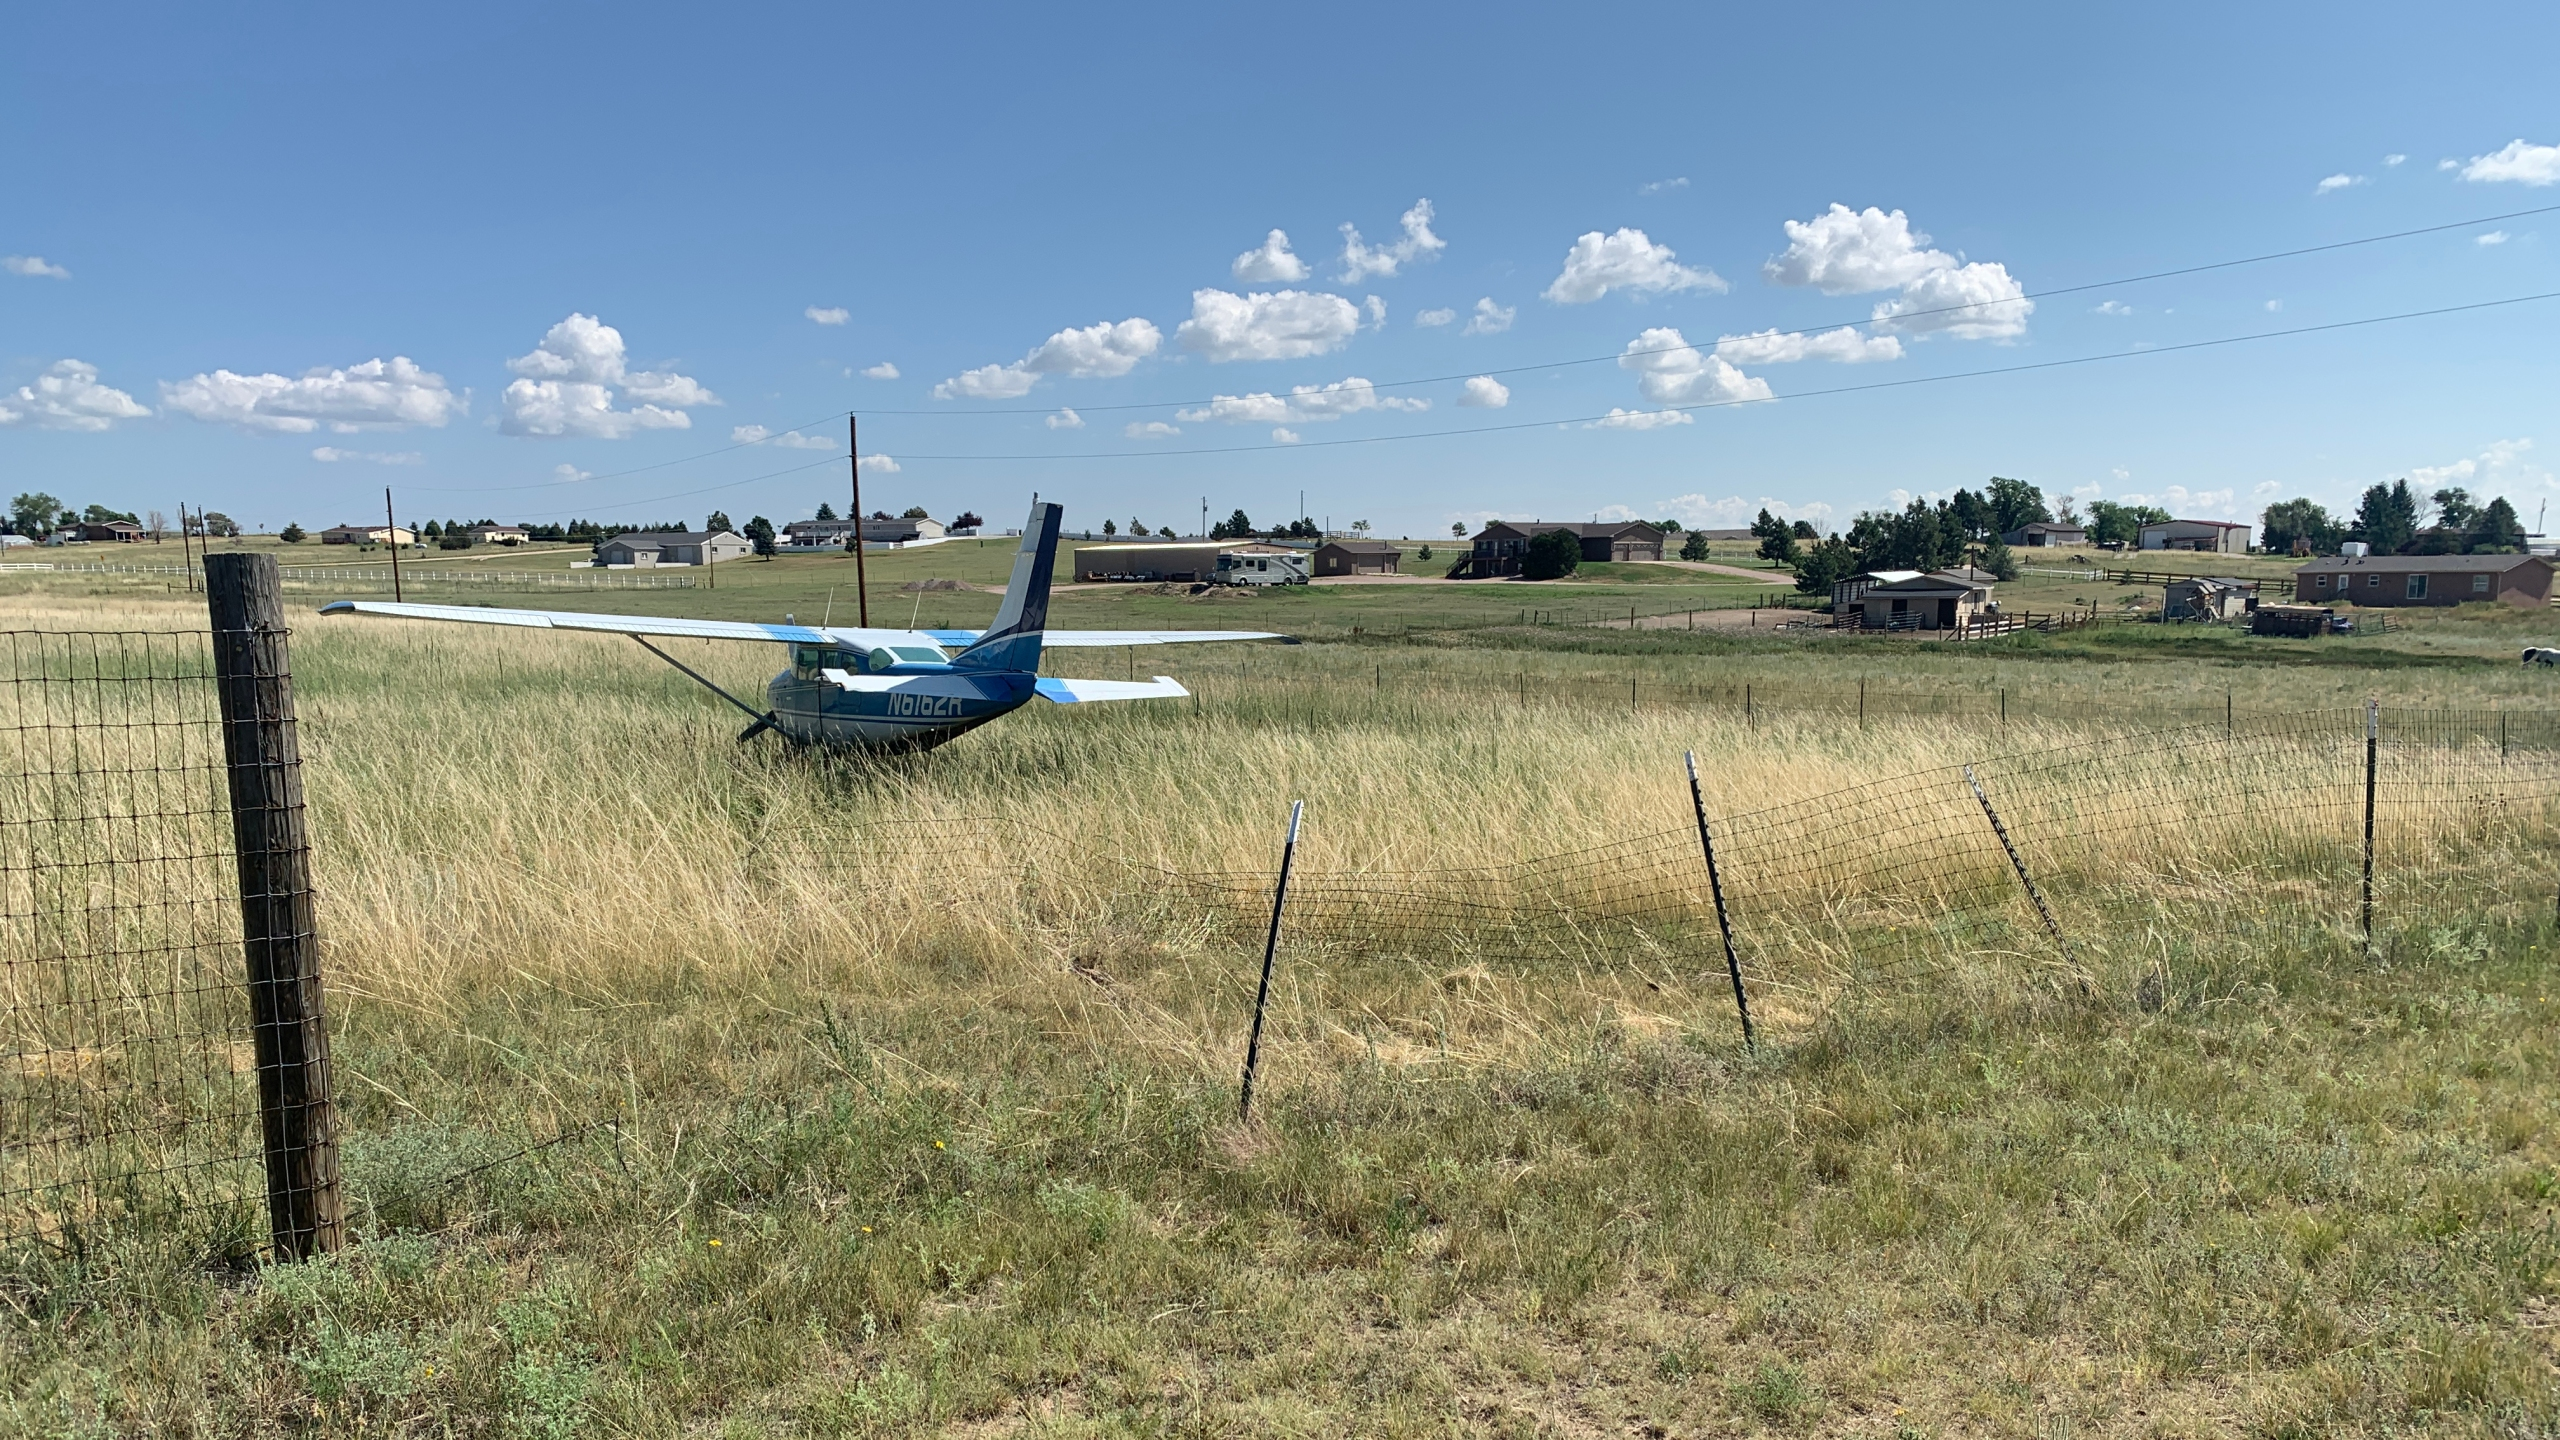 No one was injured when a small plane landed in a Peyton backyard Tuesday morning. / Sarah Hempelmann - FOX21 News